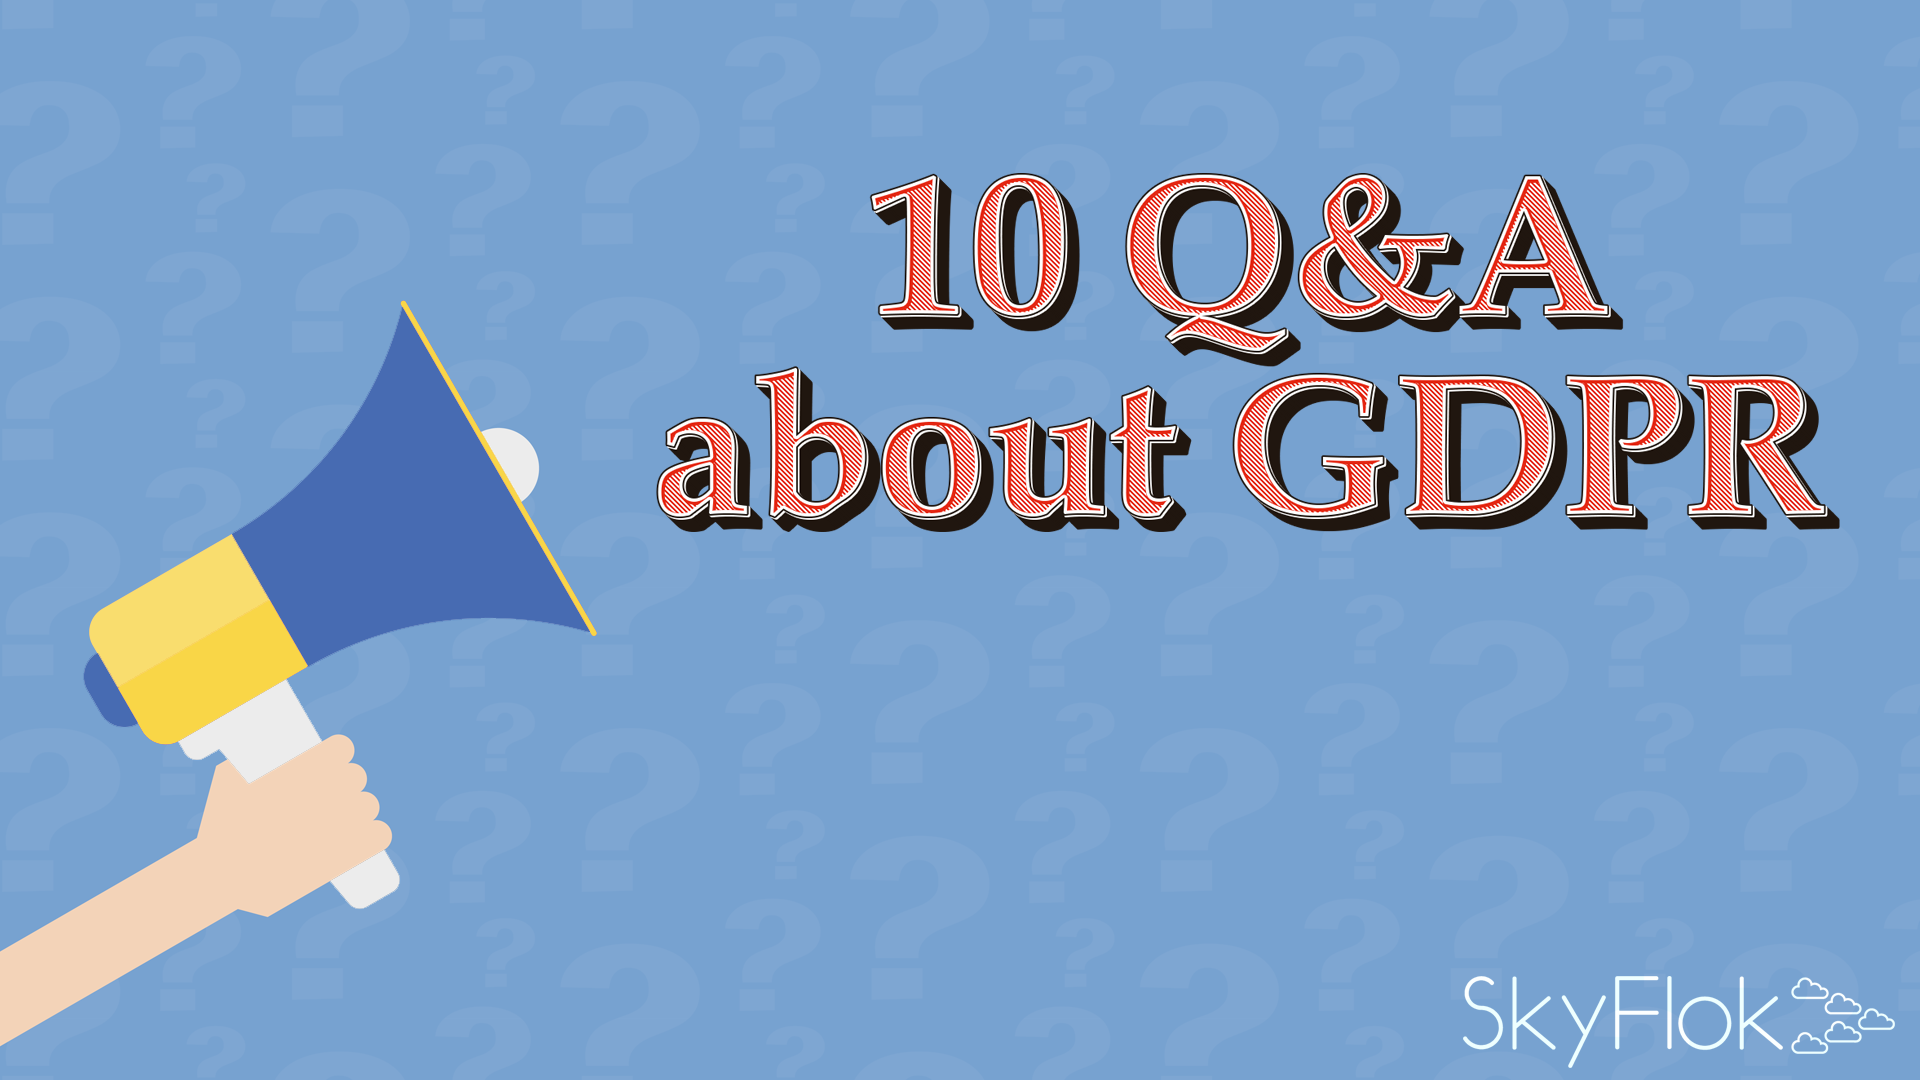 10 Q&A about GDPR